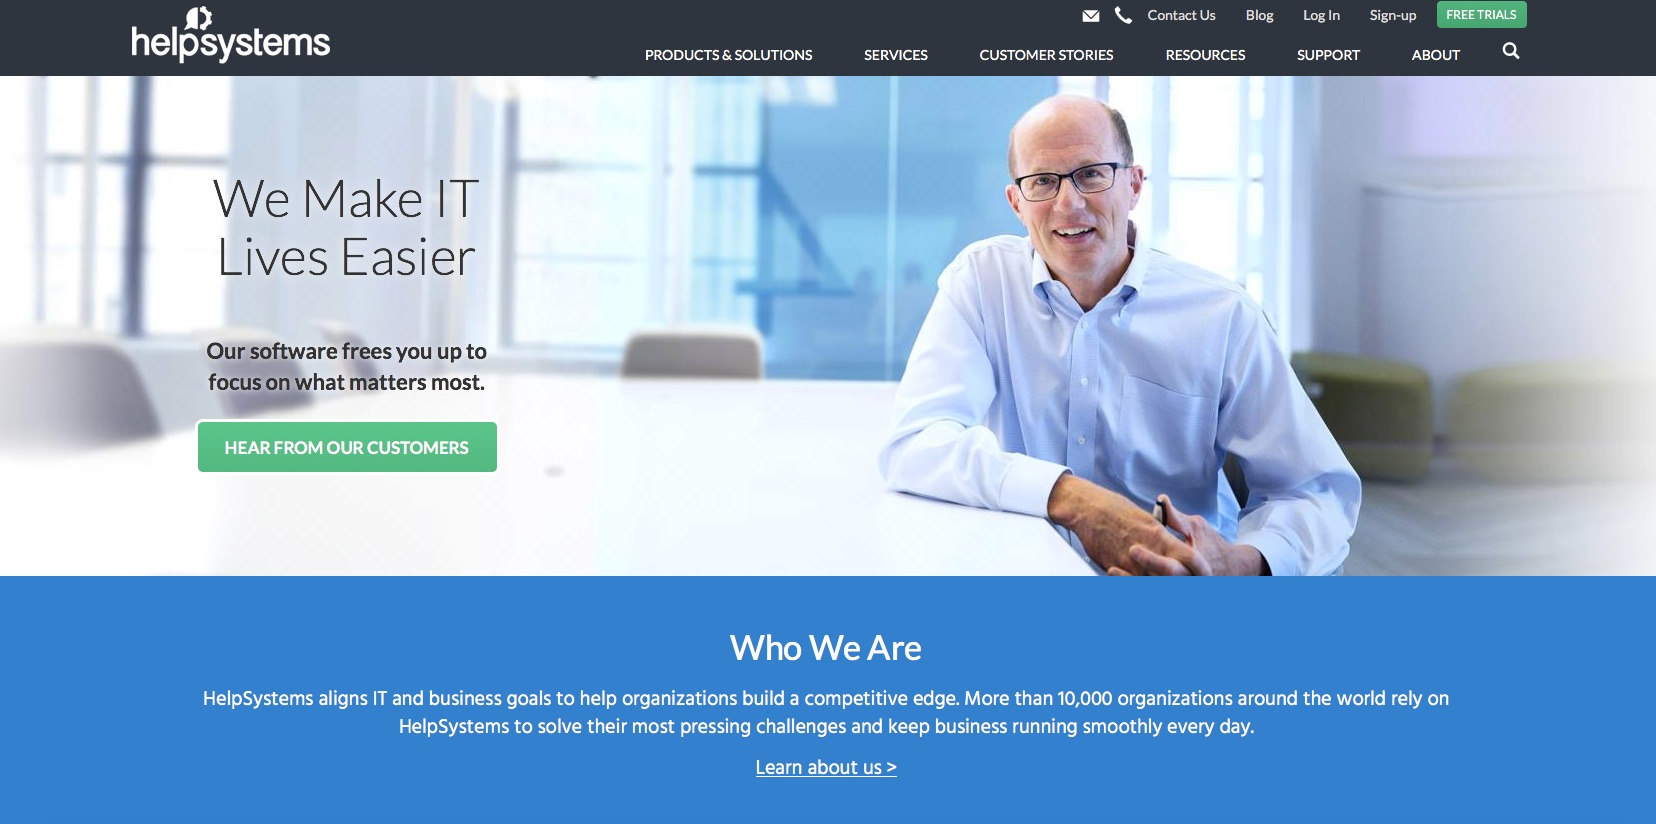 HelpSystems Website Home Page